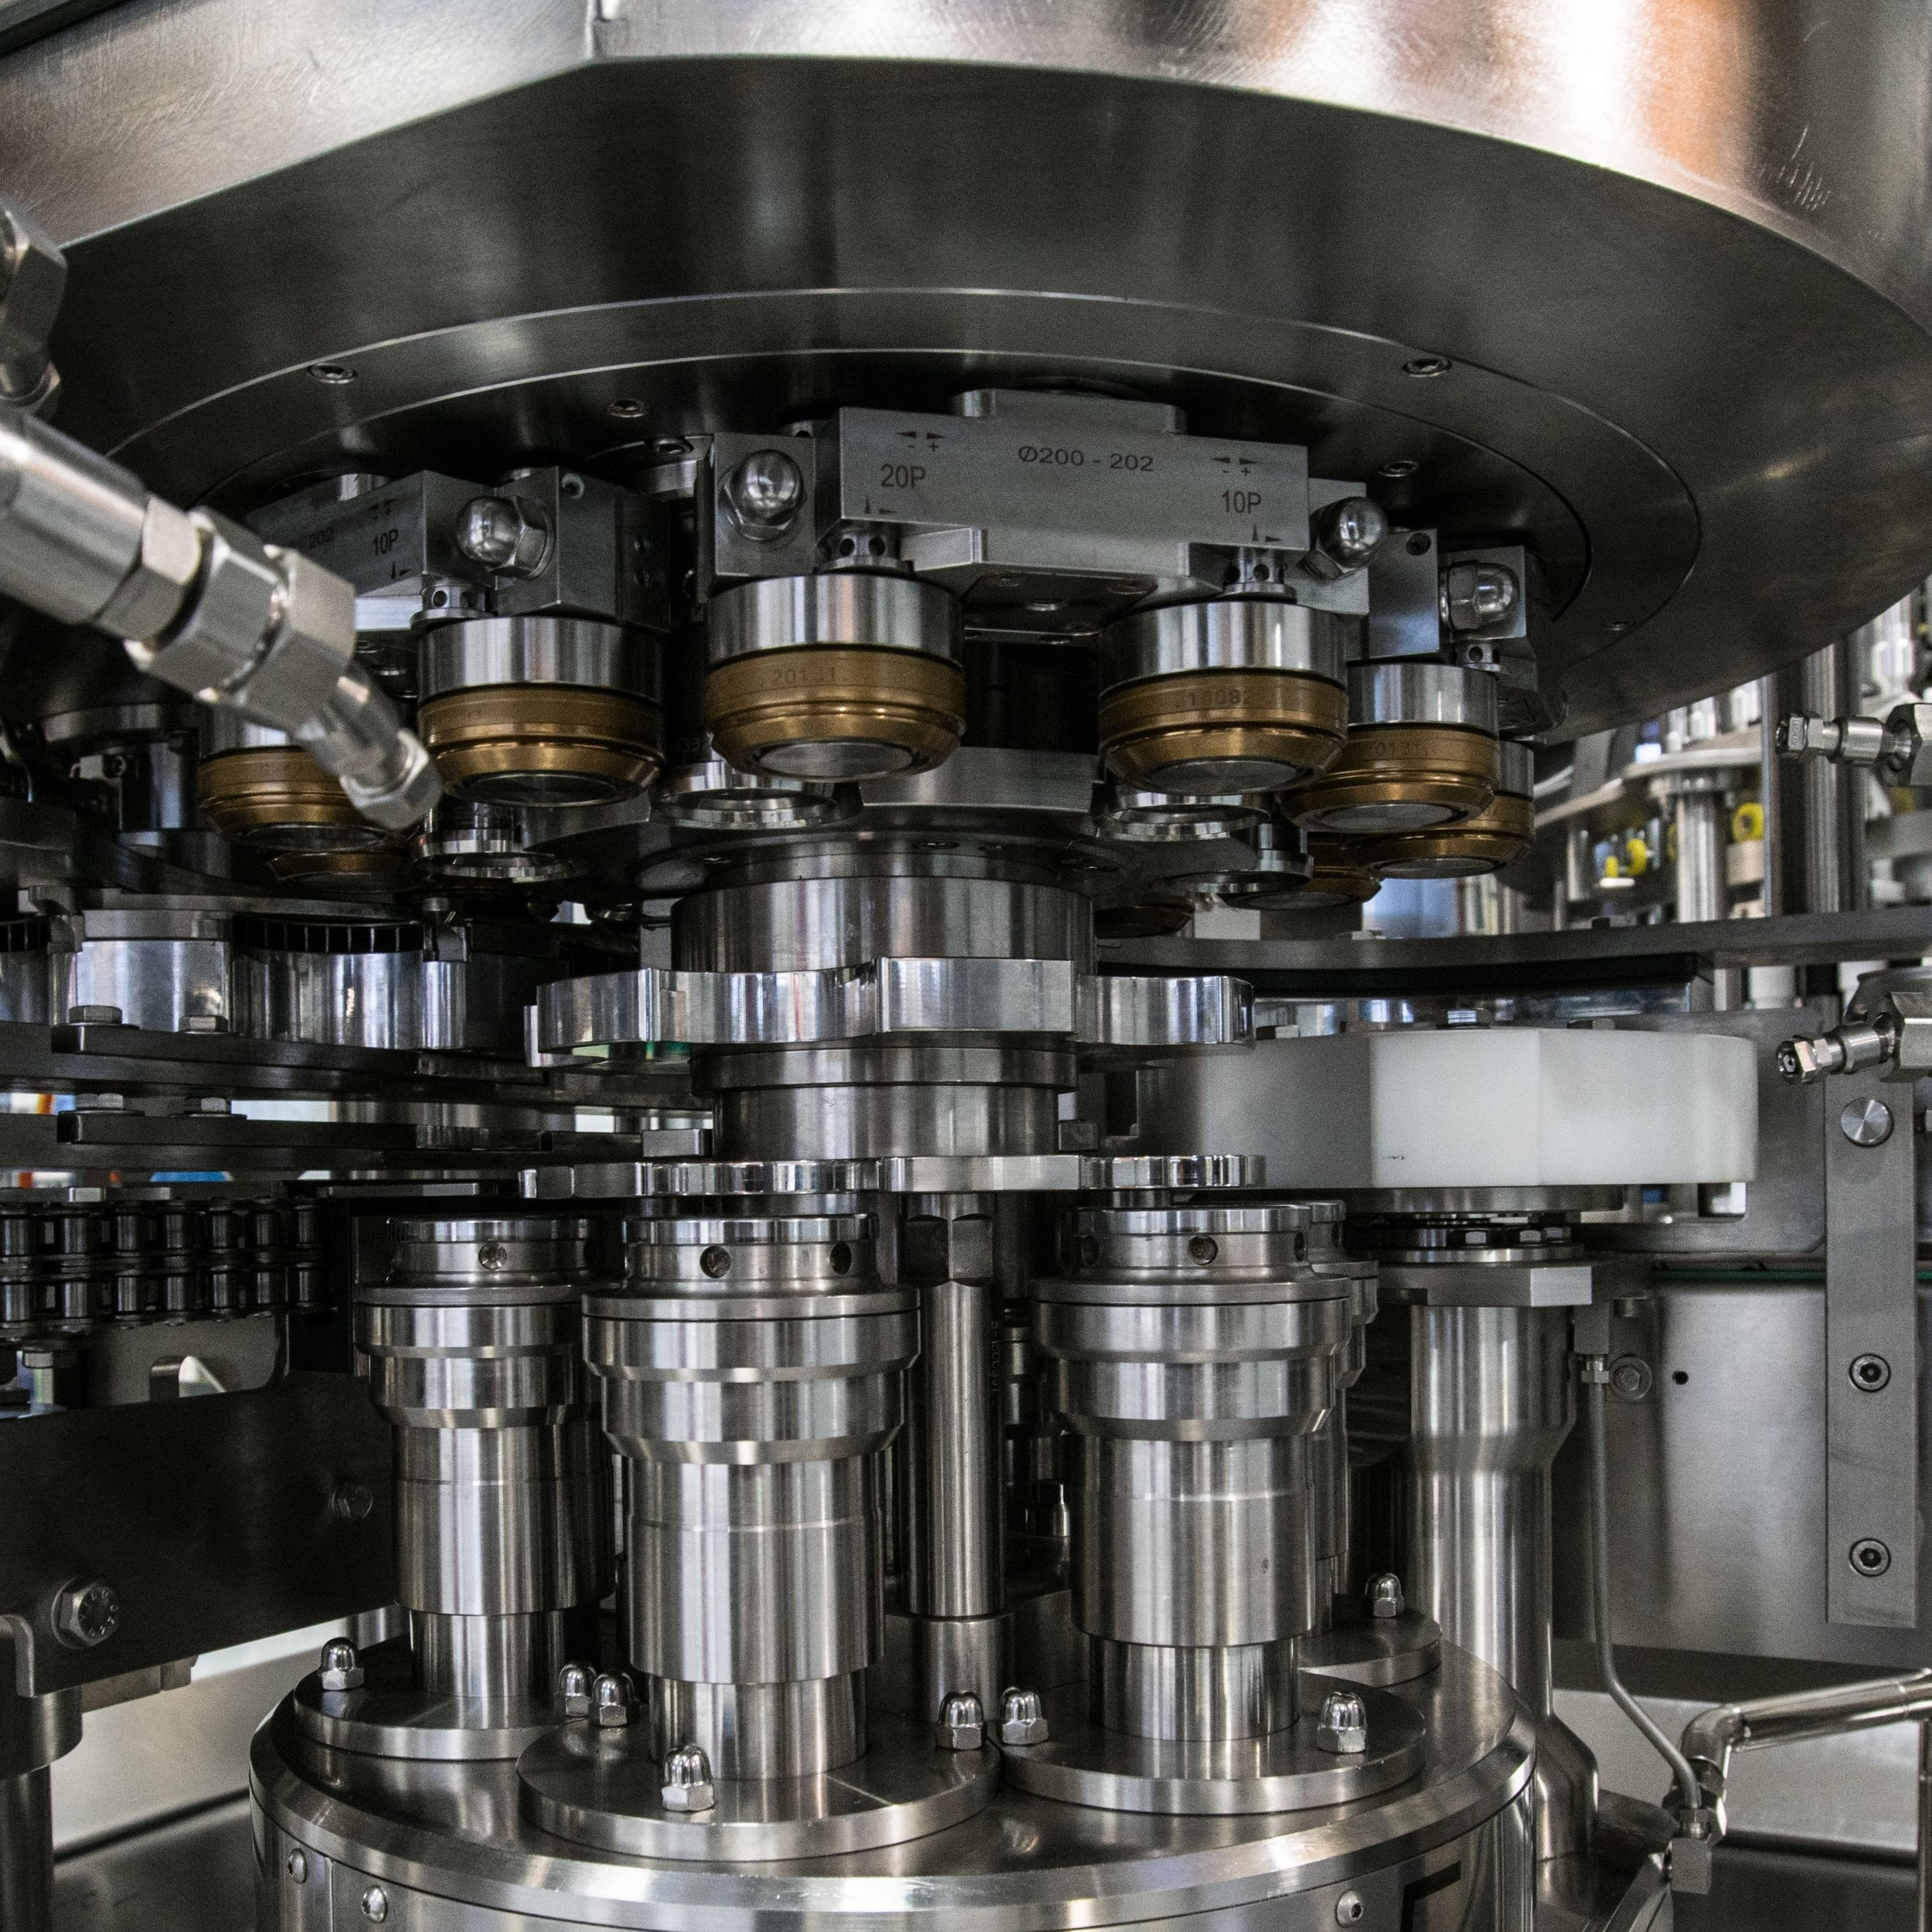 WE SERVICE PACKAGING AND PROCESS EQUIPMENT & offer maintenance contracts -